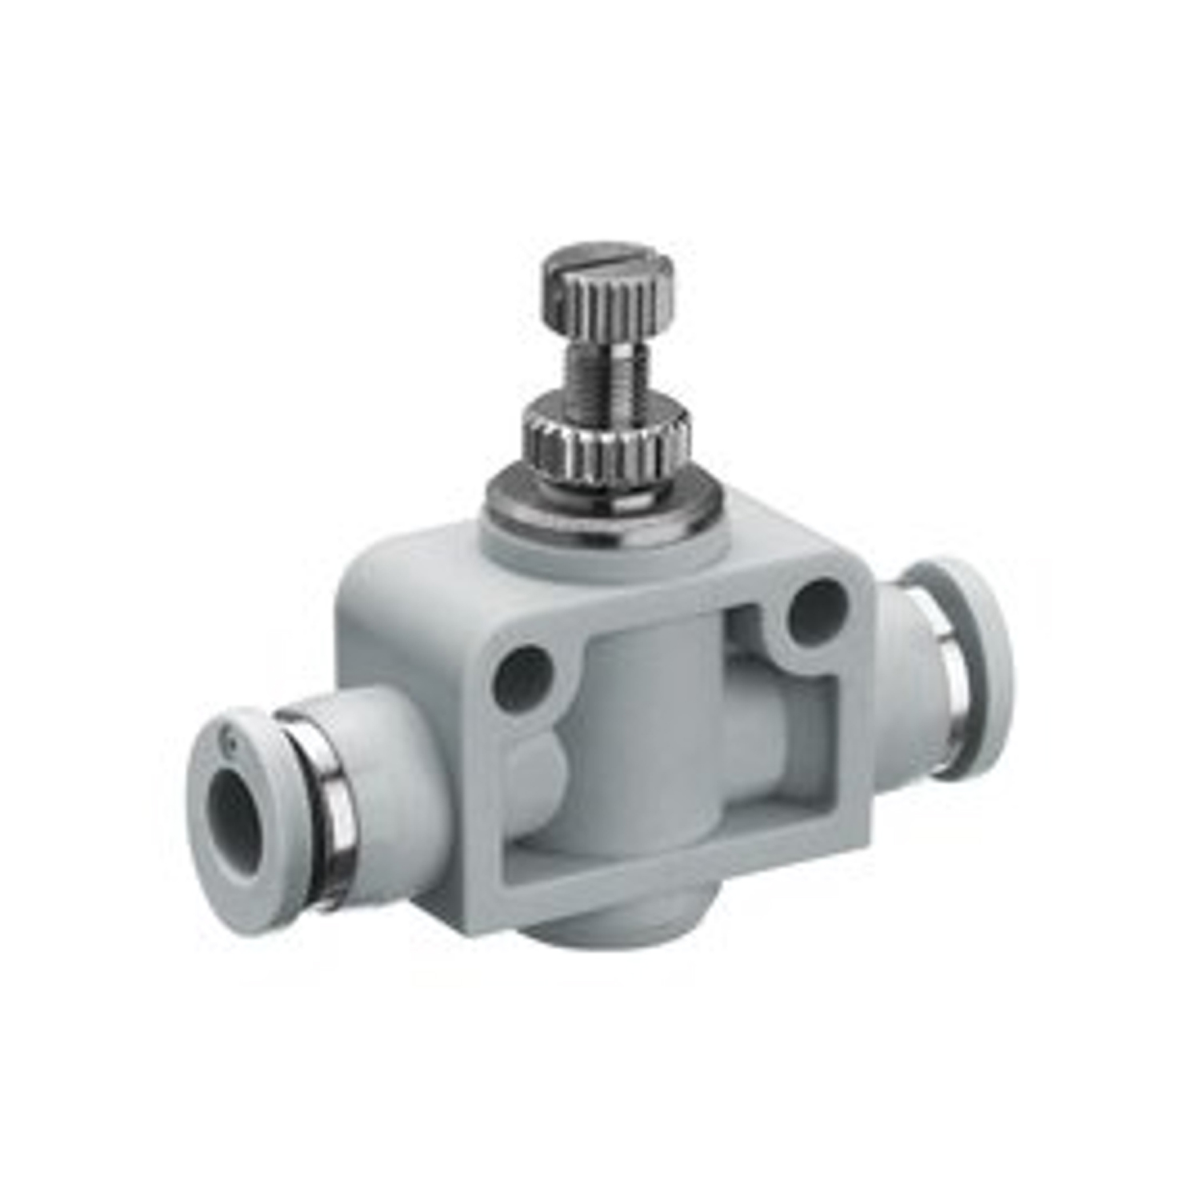 Plastic straight check valve with female push in on both sides and adjustable knob on top